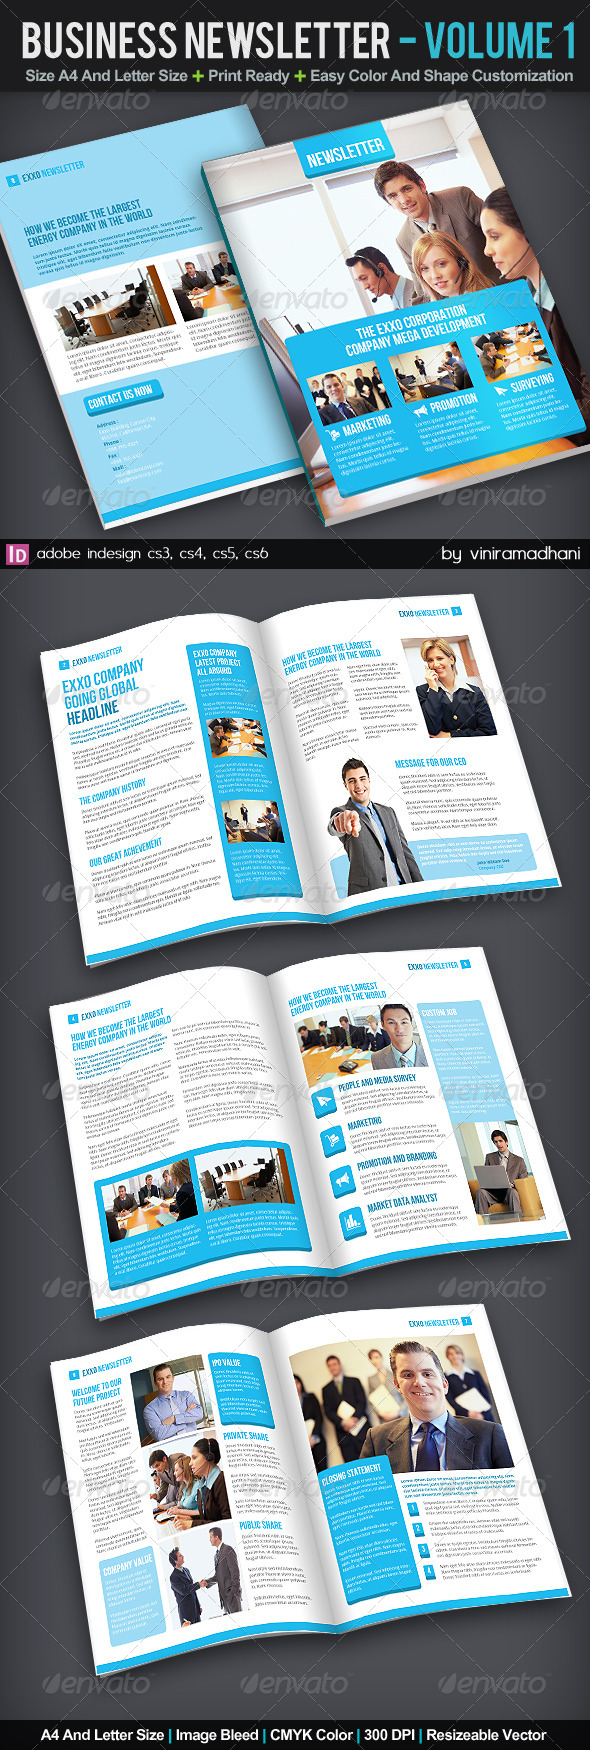 GraphicRiver Business Newsletter Volume 1 6098666